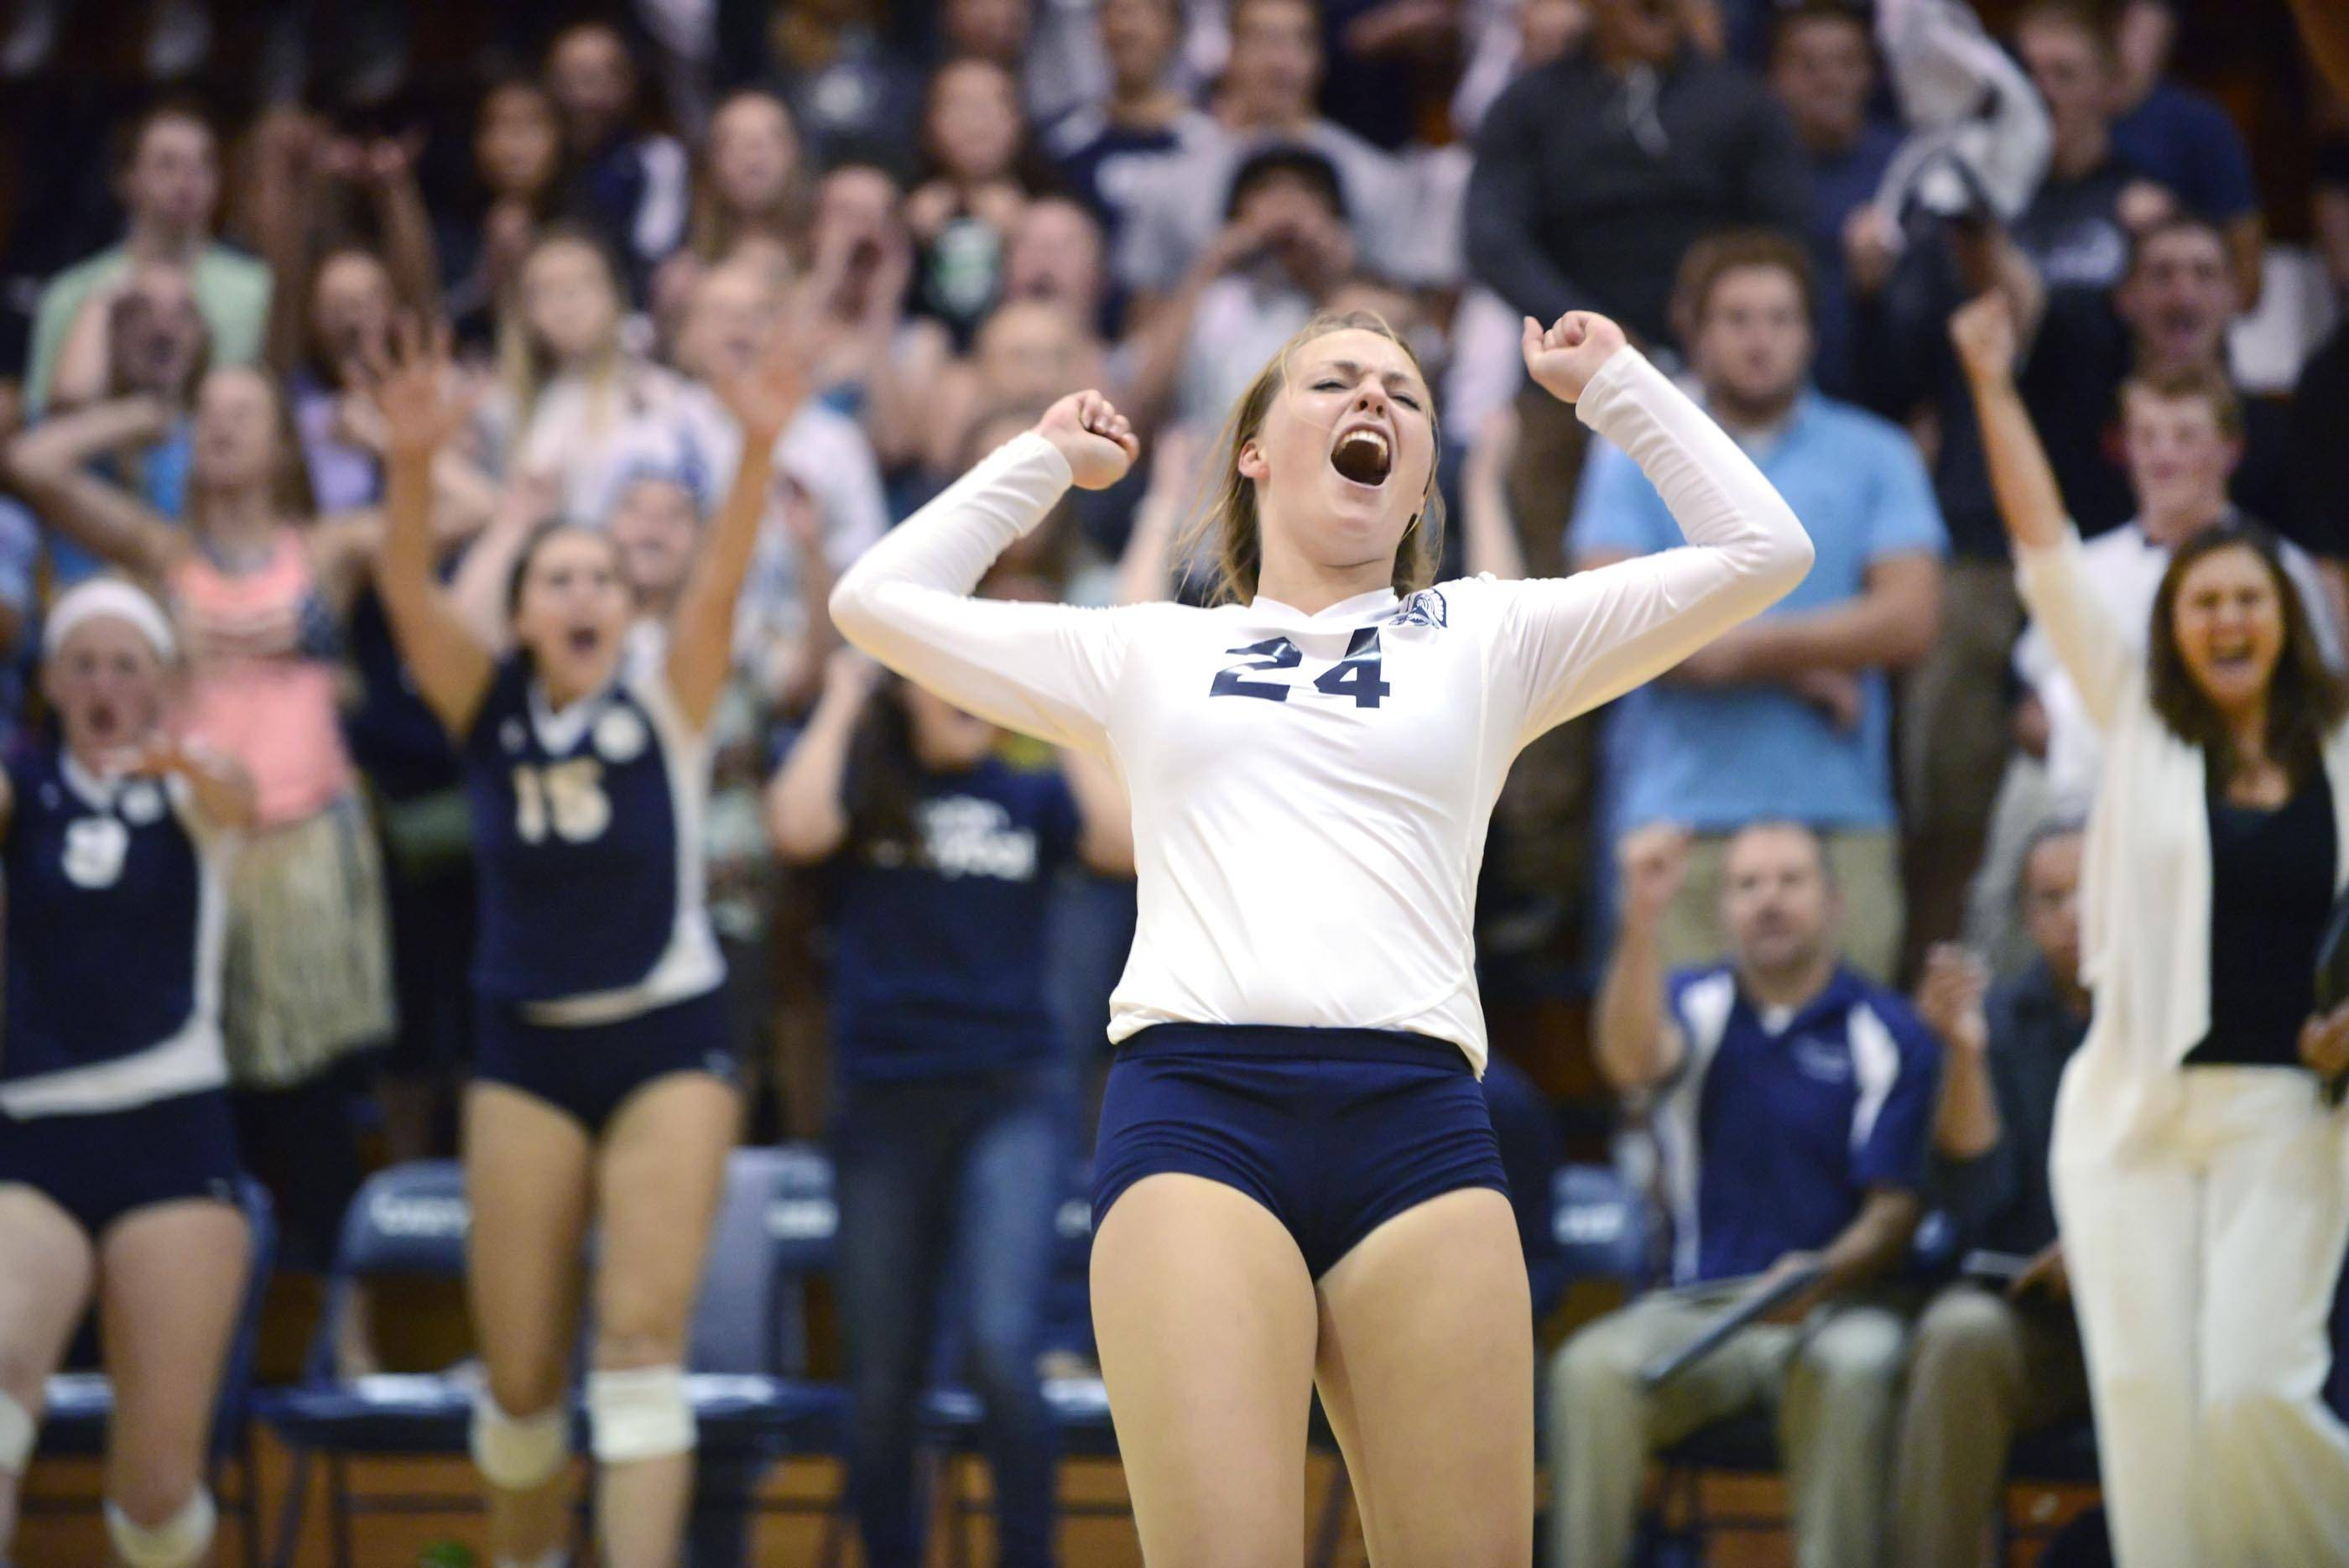 Cary-Grove's Brianne Coffey and the home fans reacts to a winning point late in the second game against Crystal Lake South Thursday in Cary.